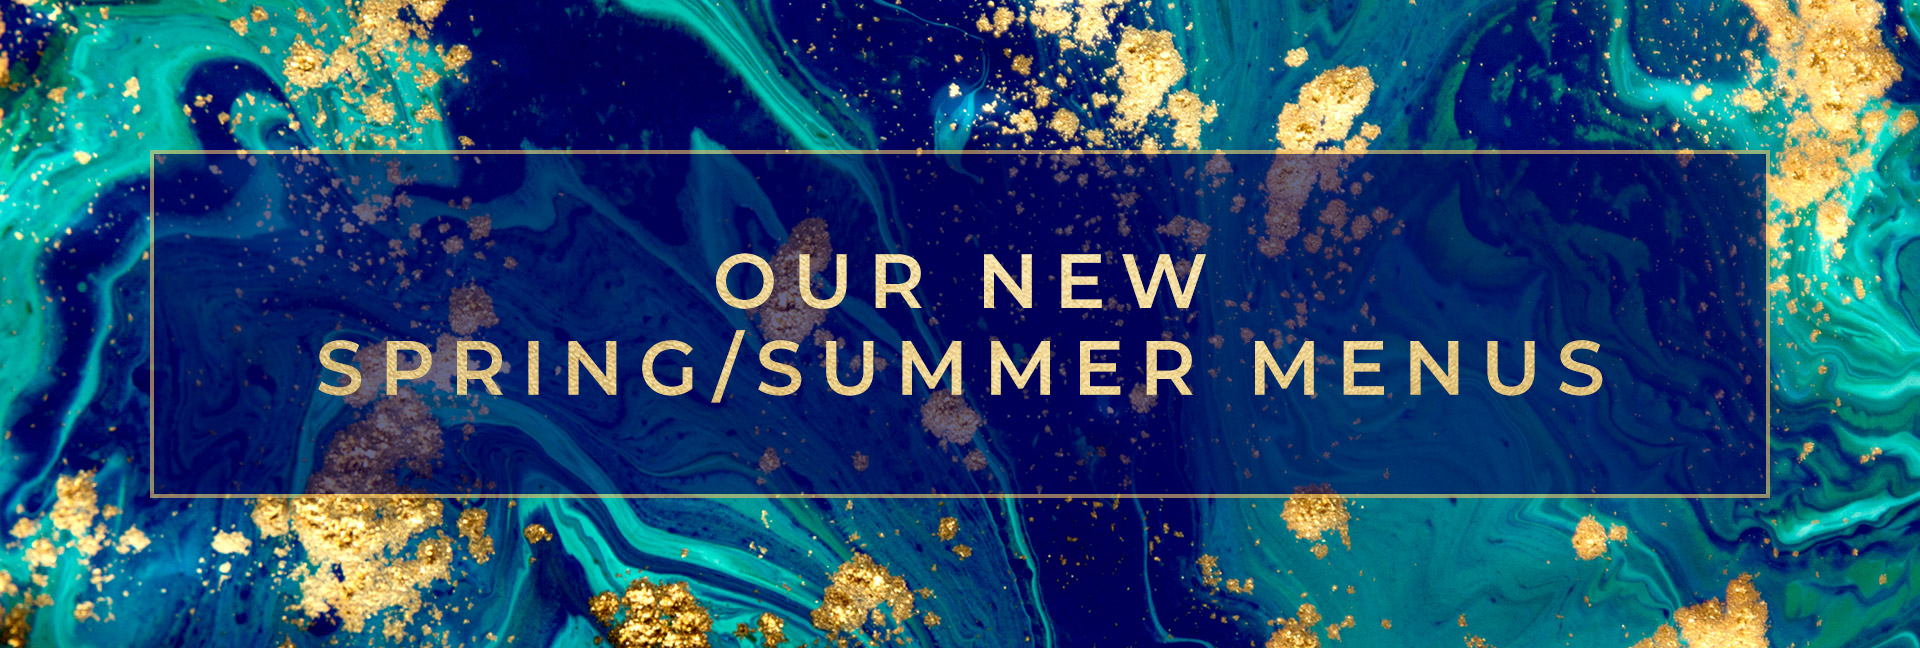 Our new Summer Menus at All Bar One